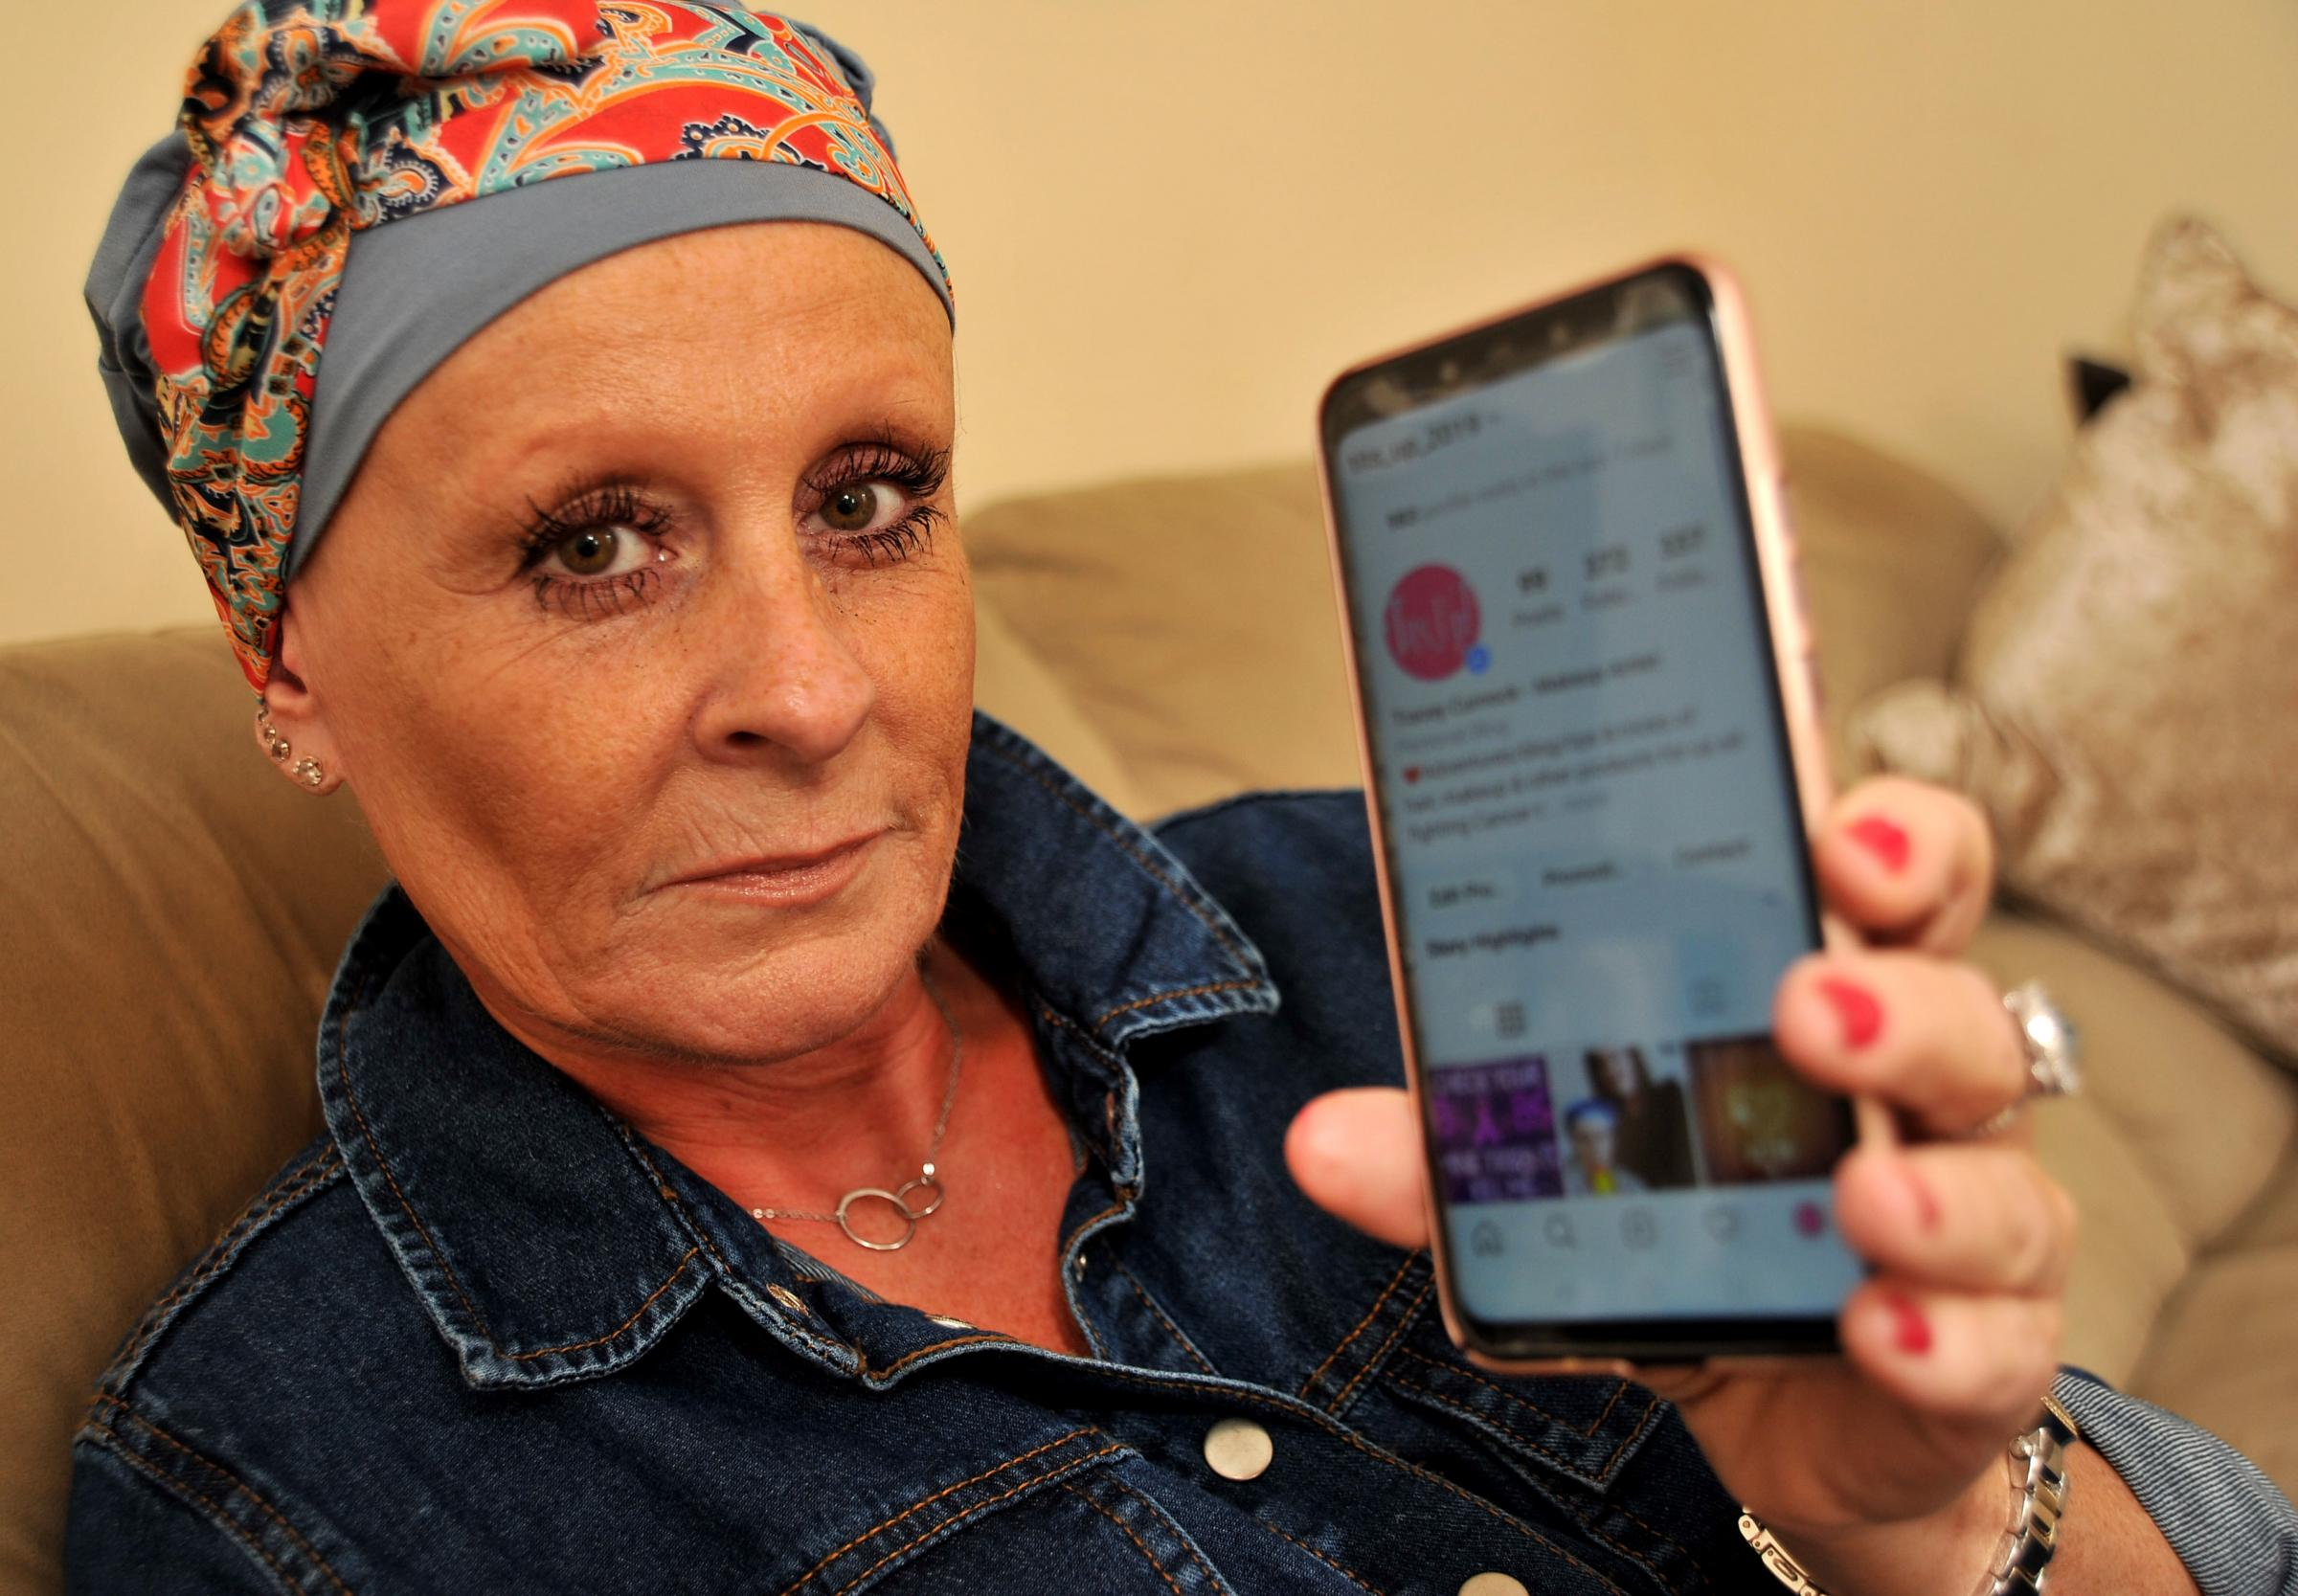 Make-up artist to the stars gets cancer diagnosis thanks to ITV's Lorraine